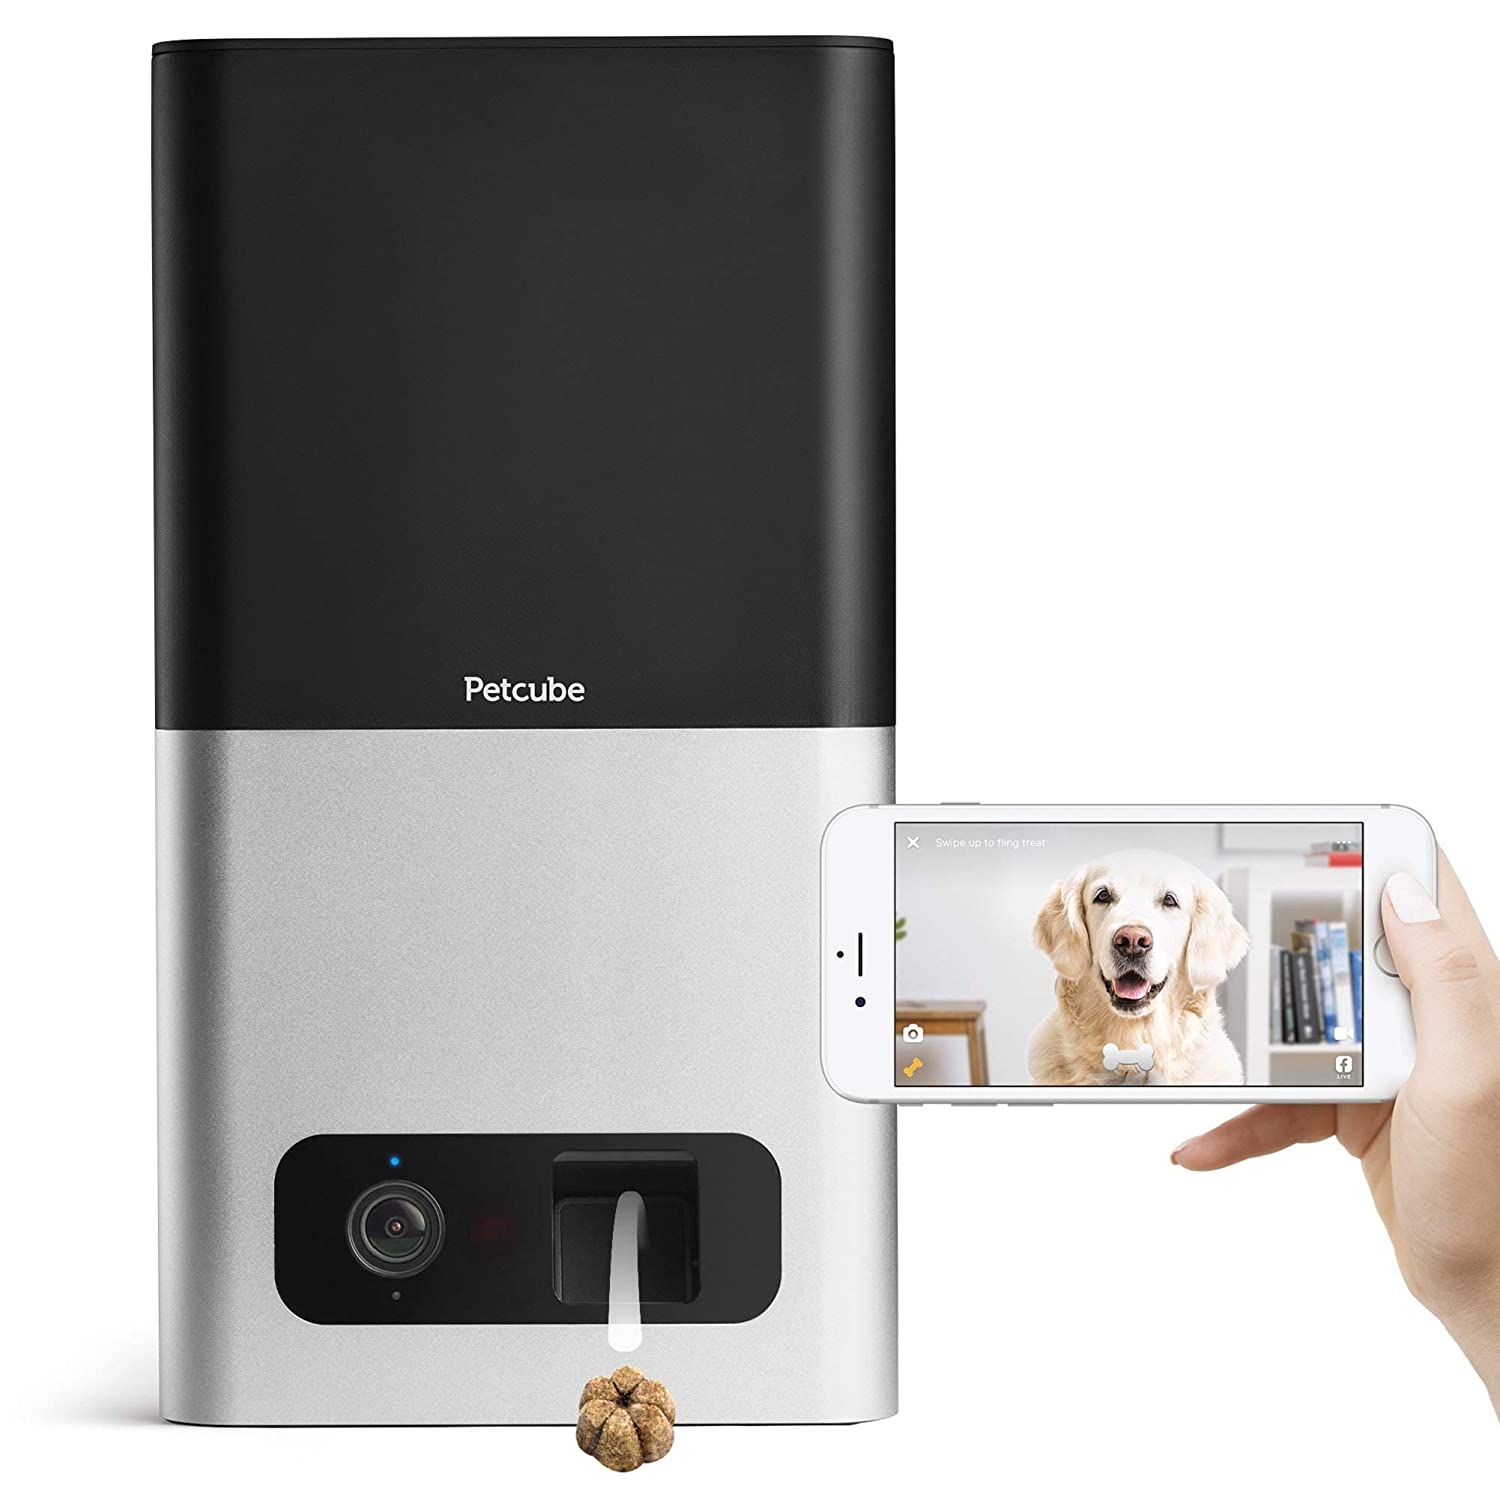 Petcube Bites Pet Camera with Treat Dispenser. Monitor Your Pet Remotely with HD 1080p Video, Two-Way Audio, Night Vision, Sound and Motion Alerts. For Dogs and Cats. Works with Alexa. Certified Refurbished